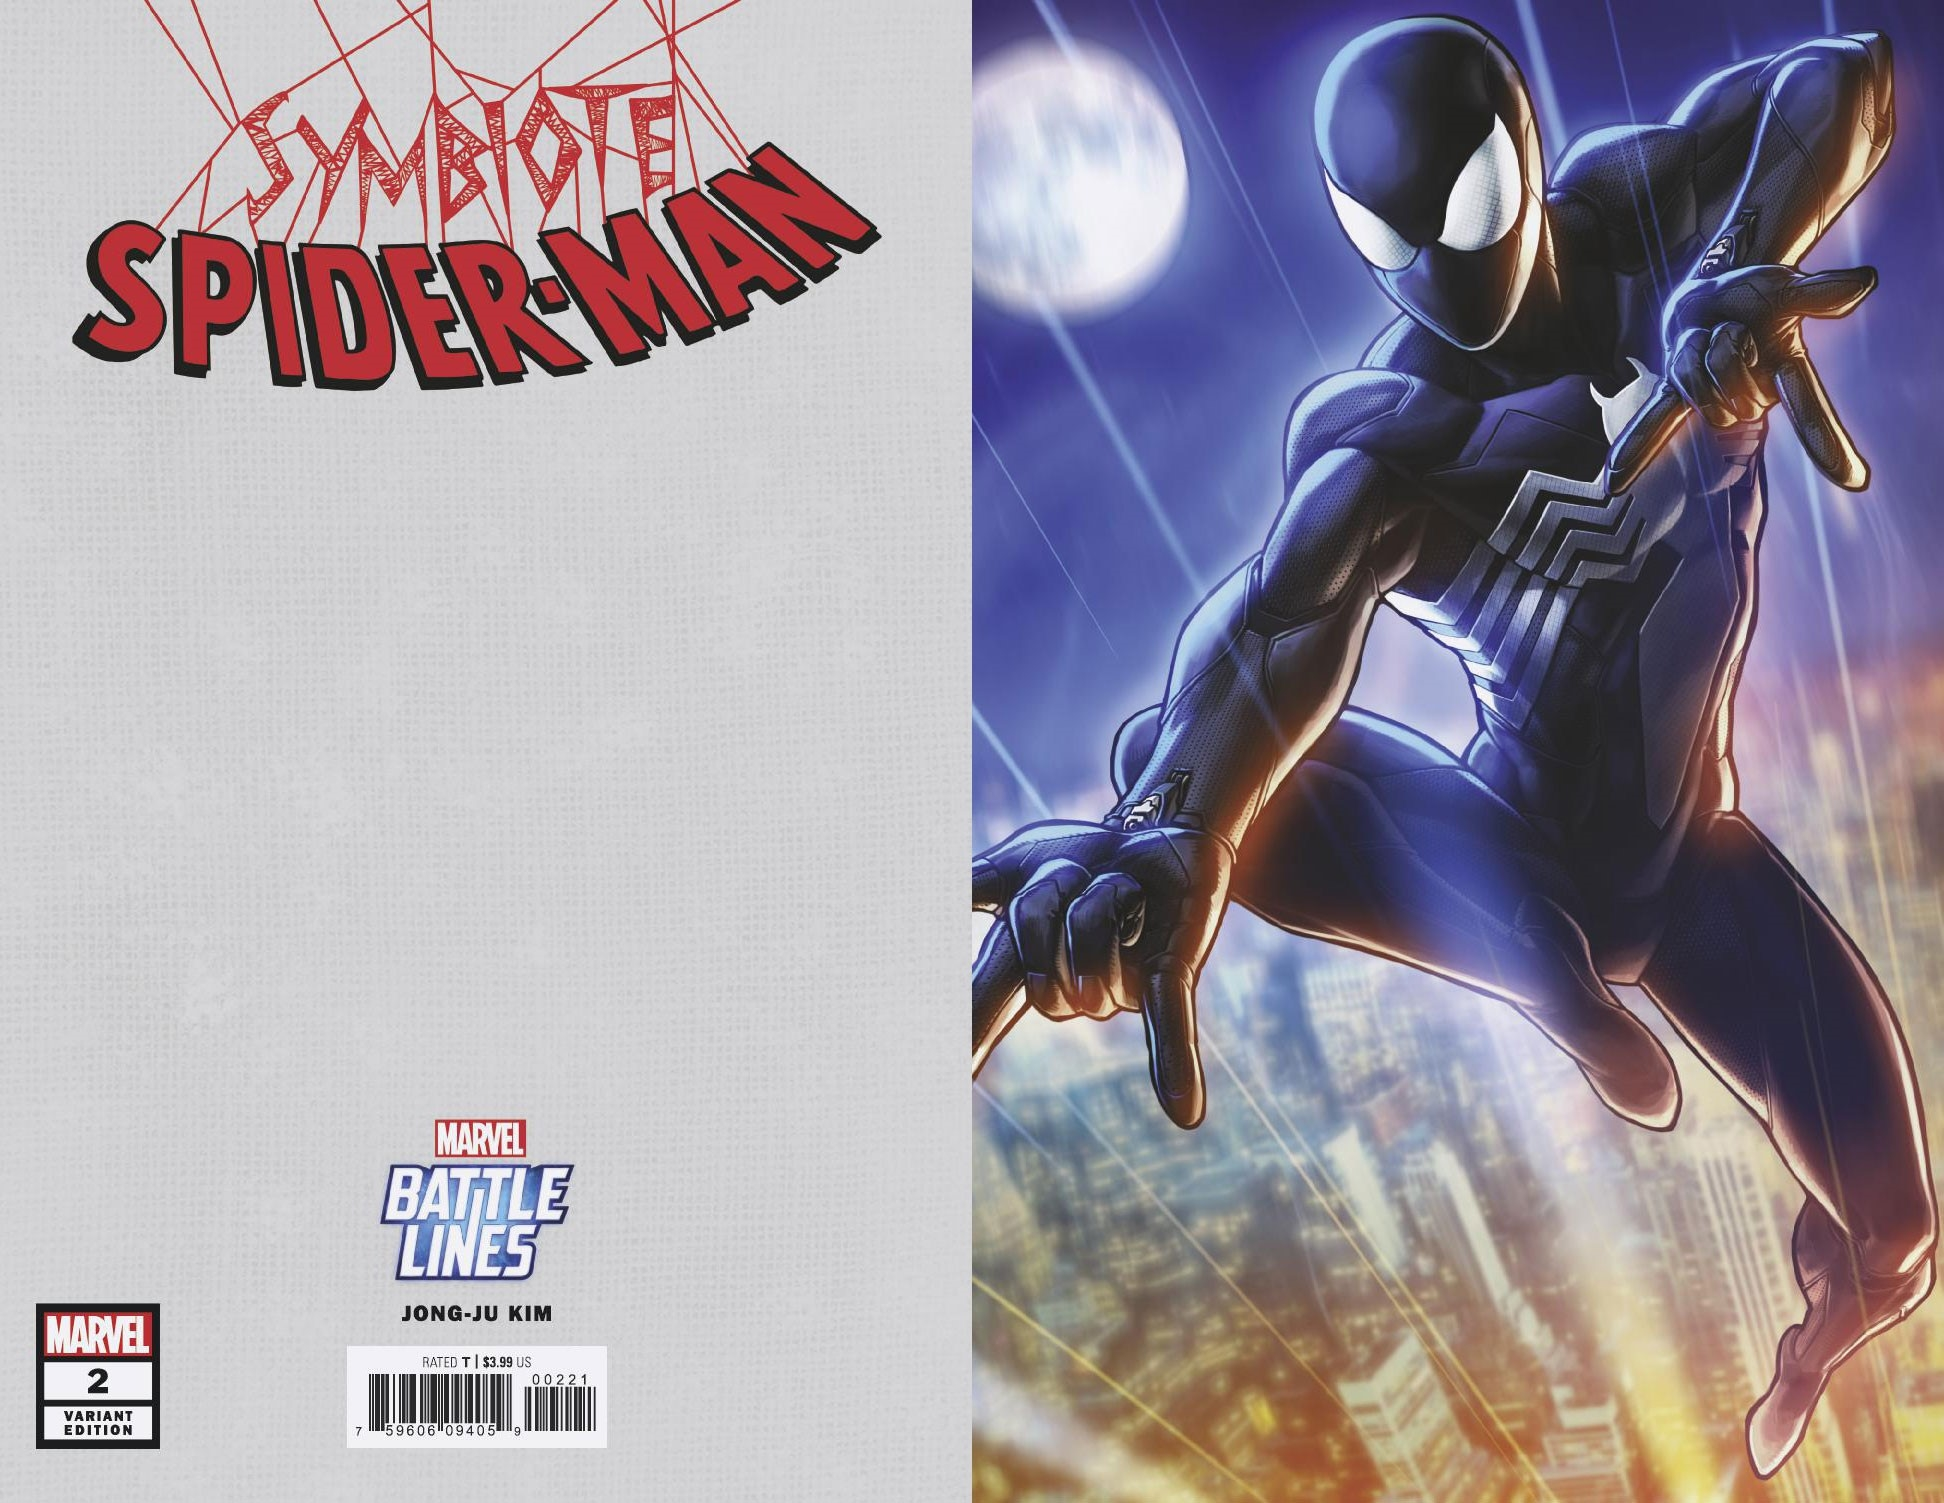 SYMBIOTE SPIDER-MAN #2 (OF 5) JONGJU KIM MARVEL BATTLE LINES